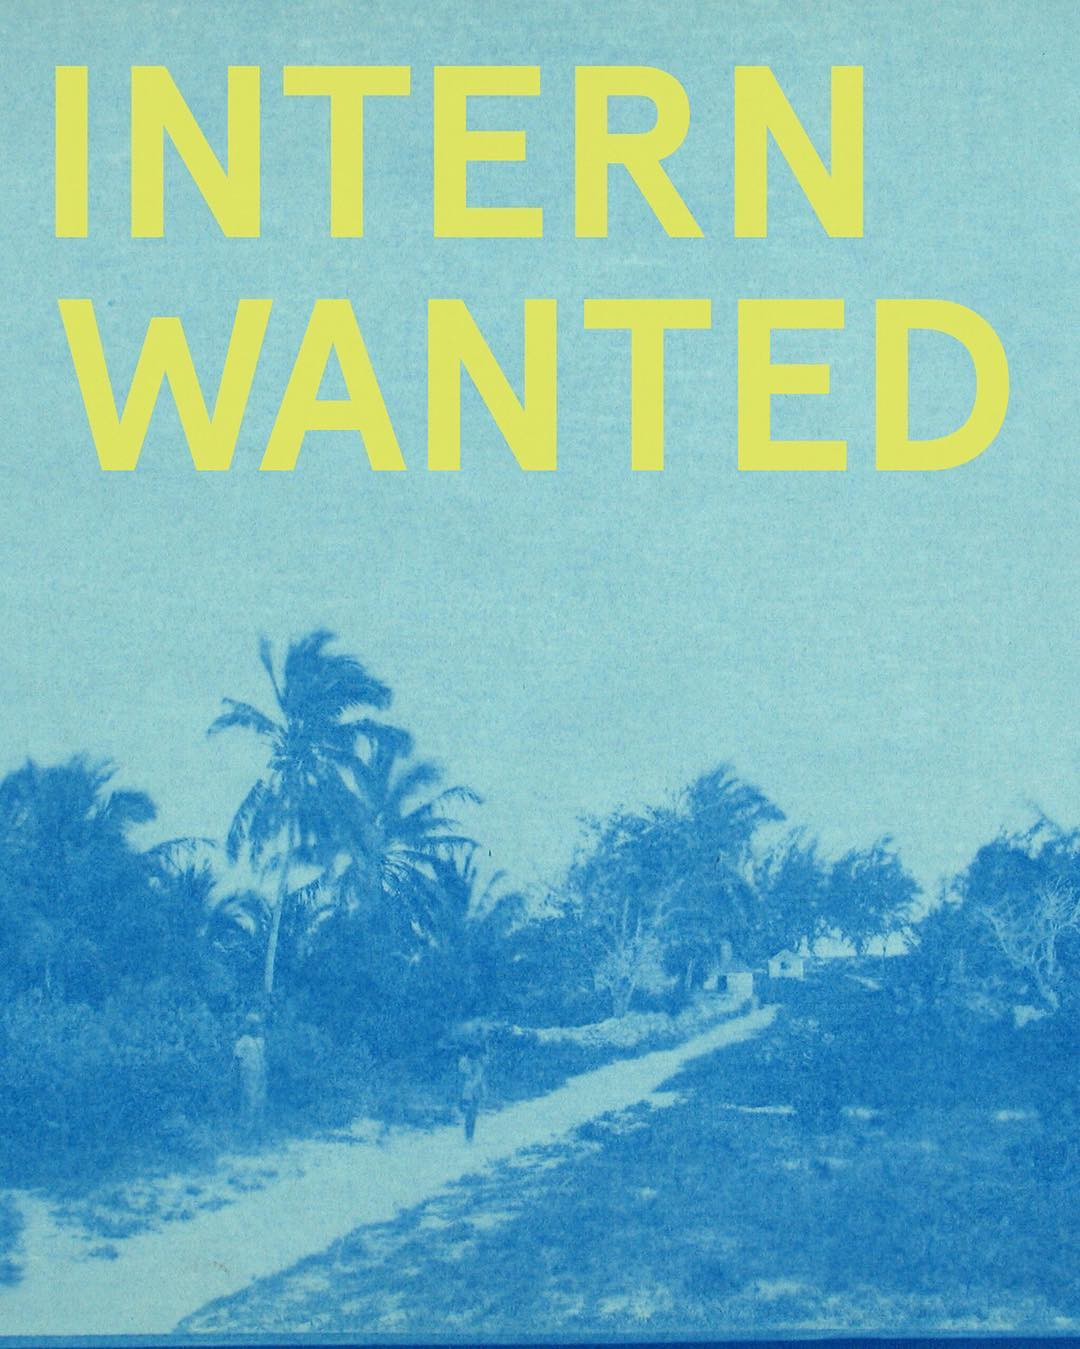 We're looking for an intern to help out with various projects we have coming up. Must be based in LA/OC and will work for